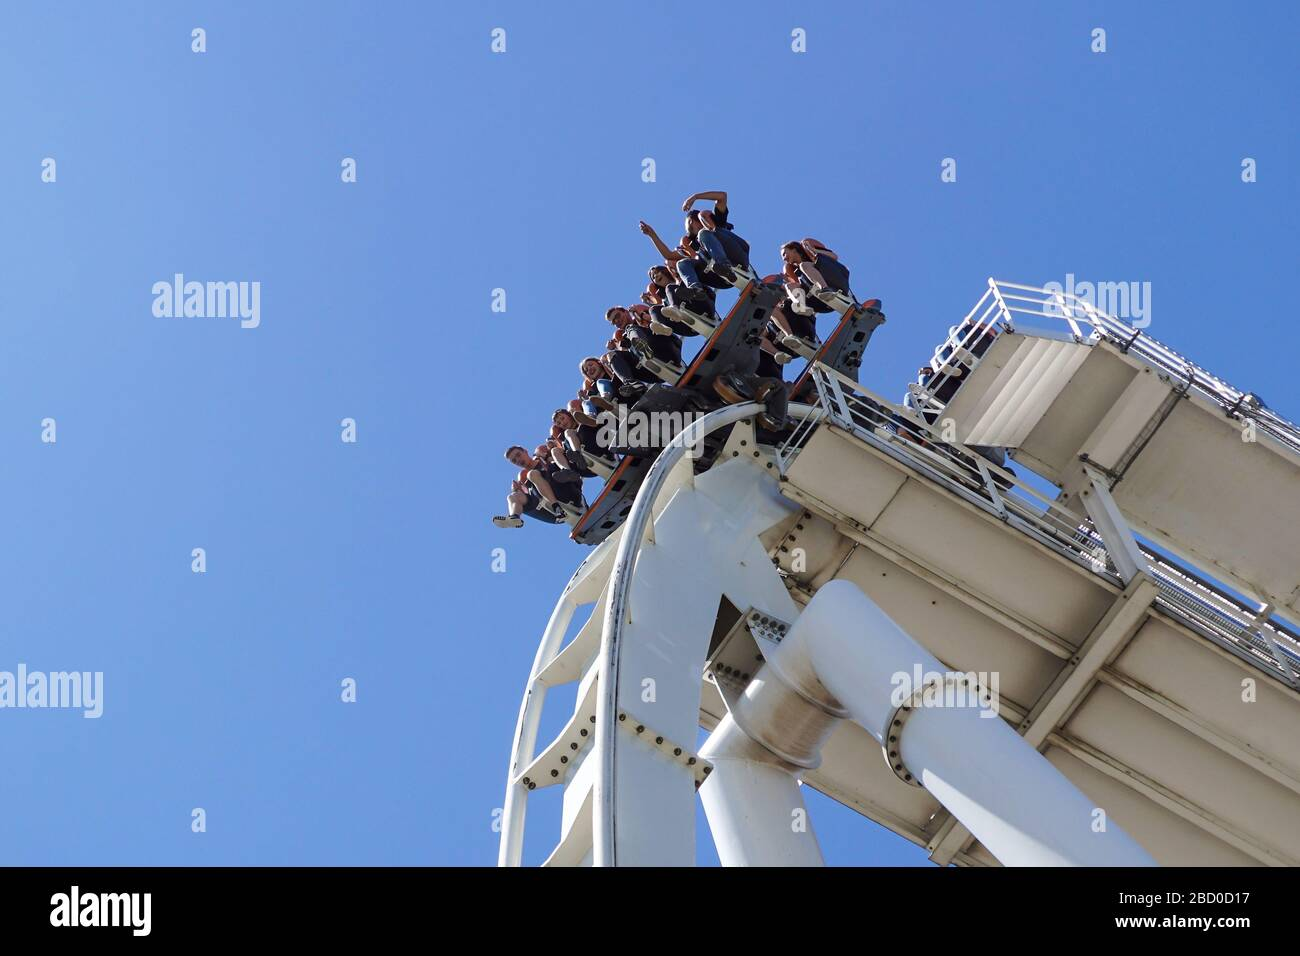 Gardaland, italy 20 june 2019 . Young people screaming during a ride at roller coaster Gardaland park Stock Photo